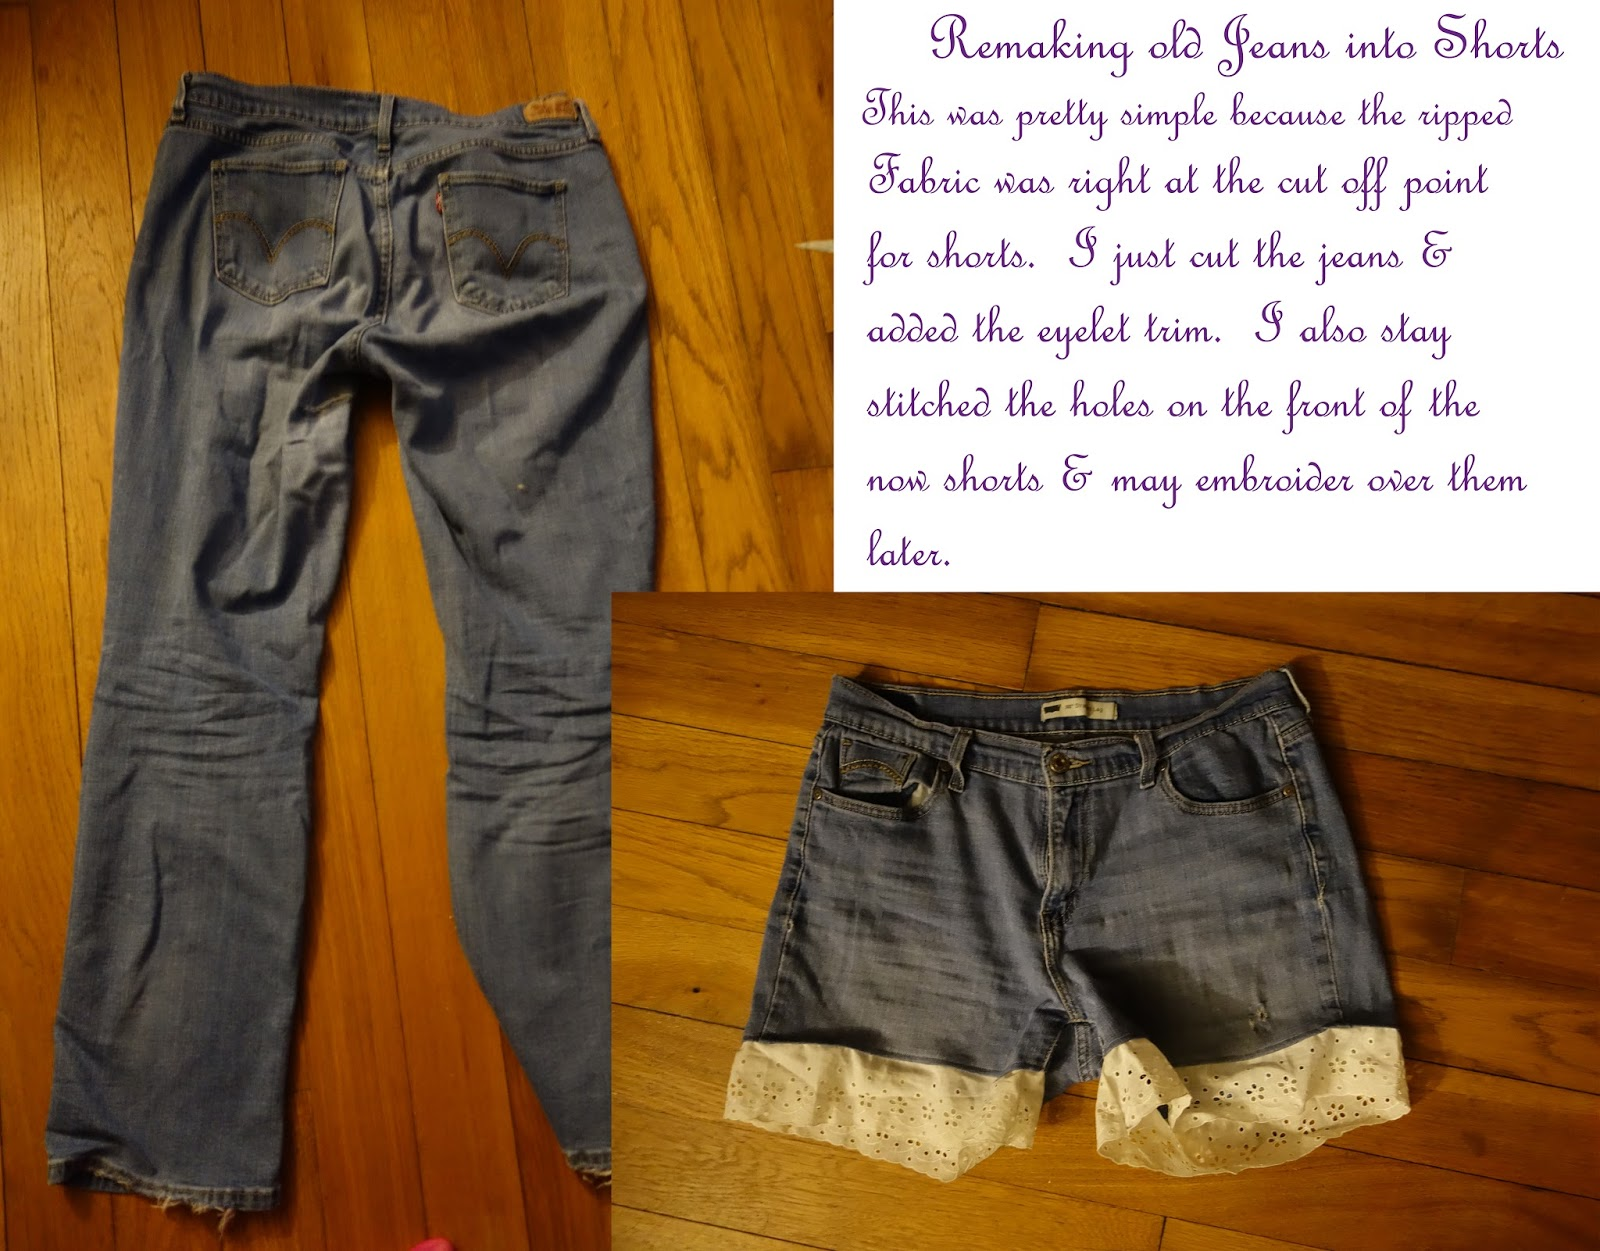 ed56ce72f3 This was a really simple sewing project I did the other day. I haven't  owned shorts in ages but see they are coming back into fashion. I was  thinking of ...